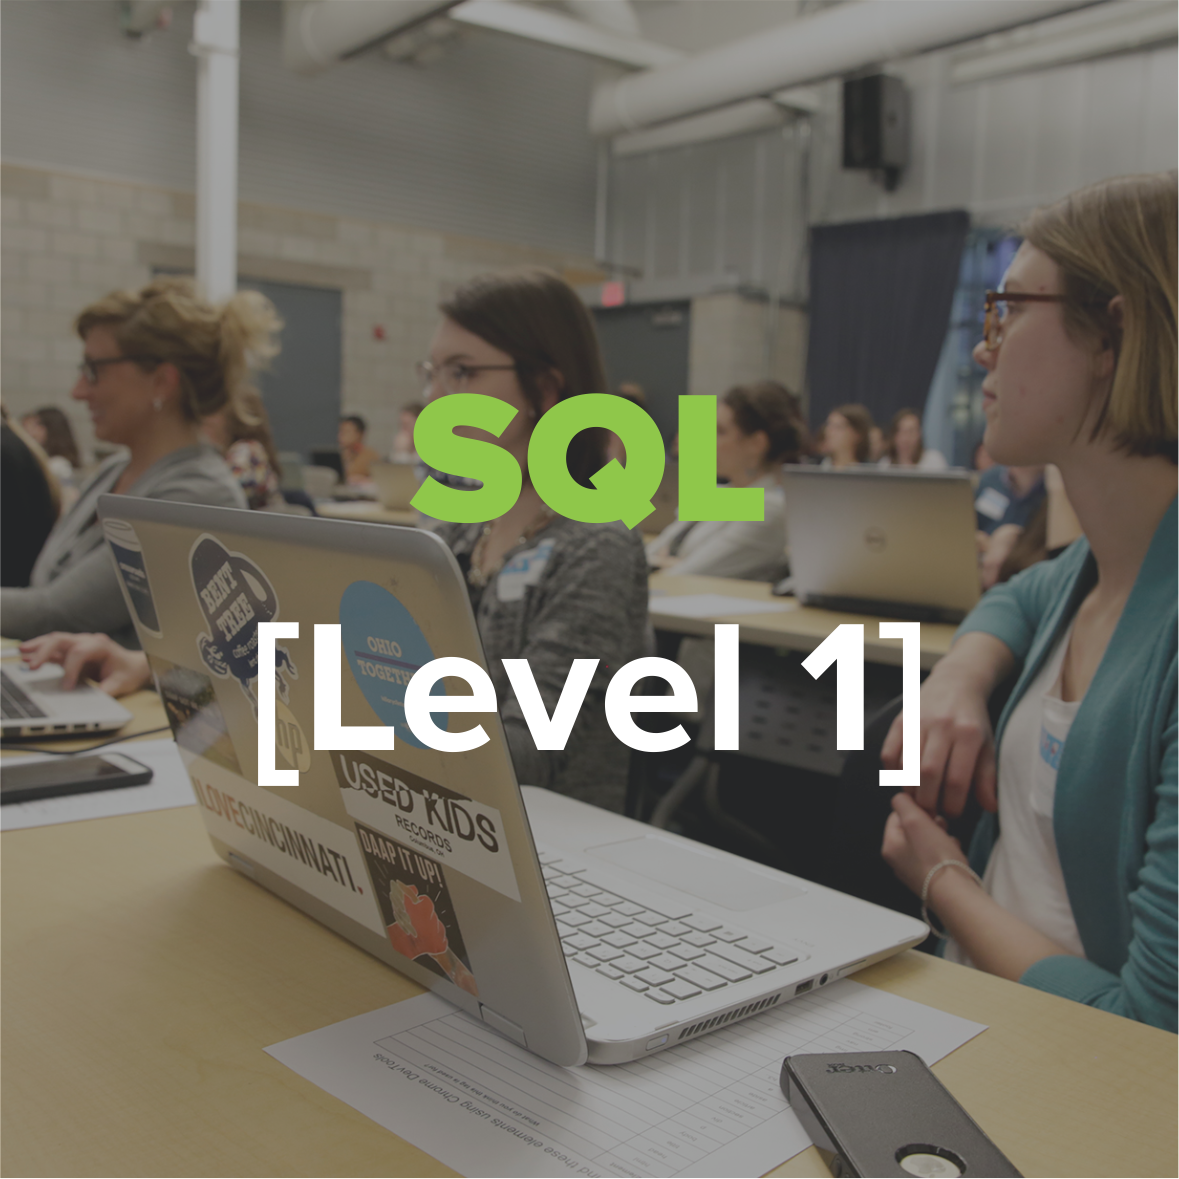 SQL [Level 1] | Tech Elevator Coding Bootcamp